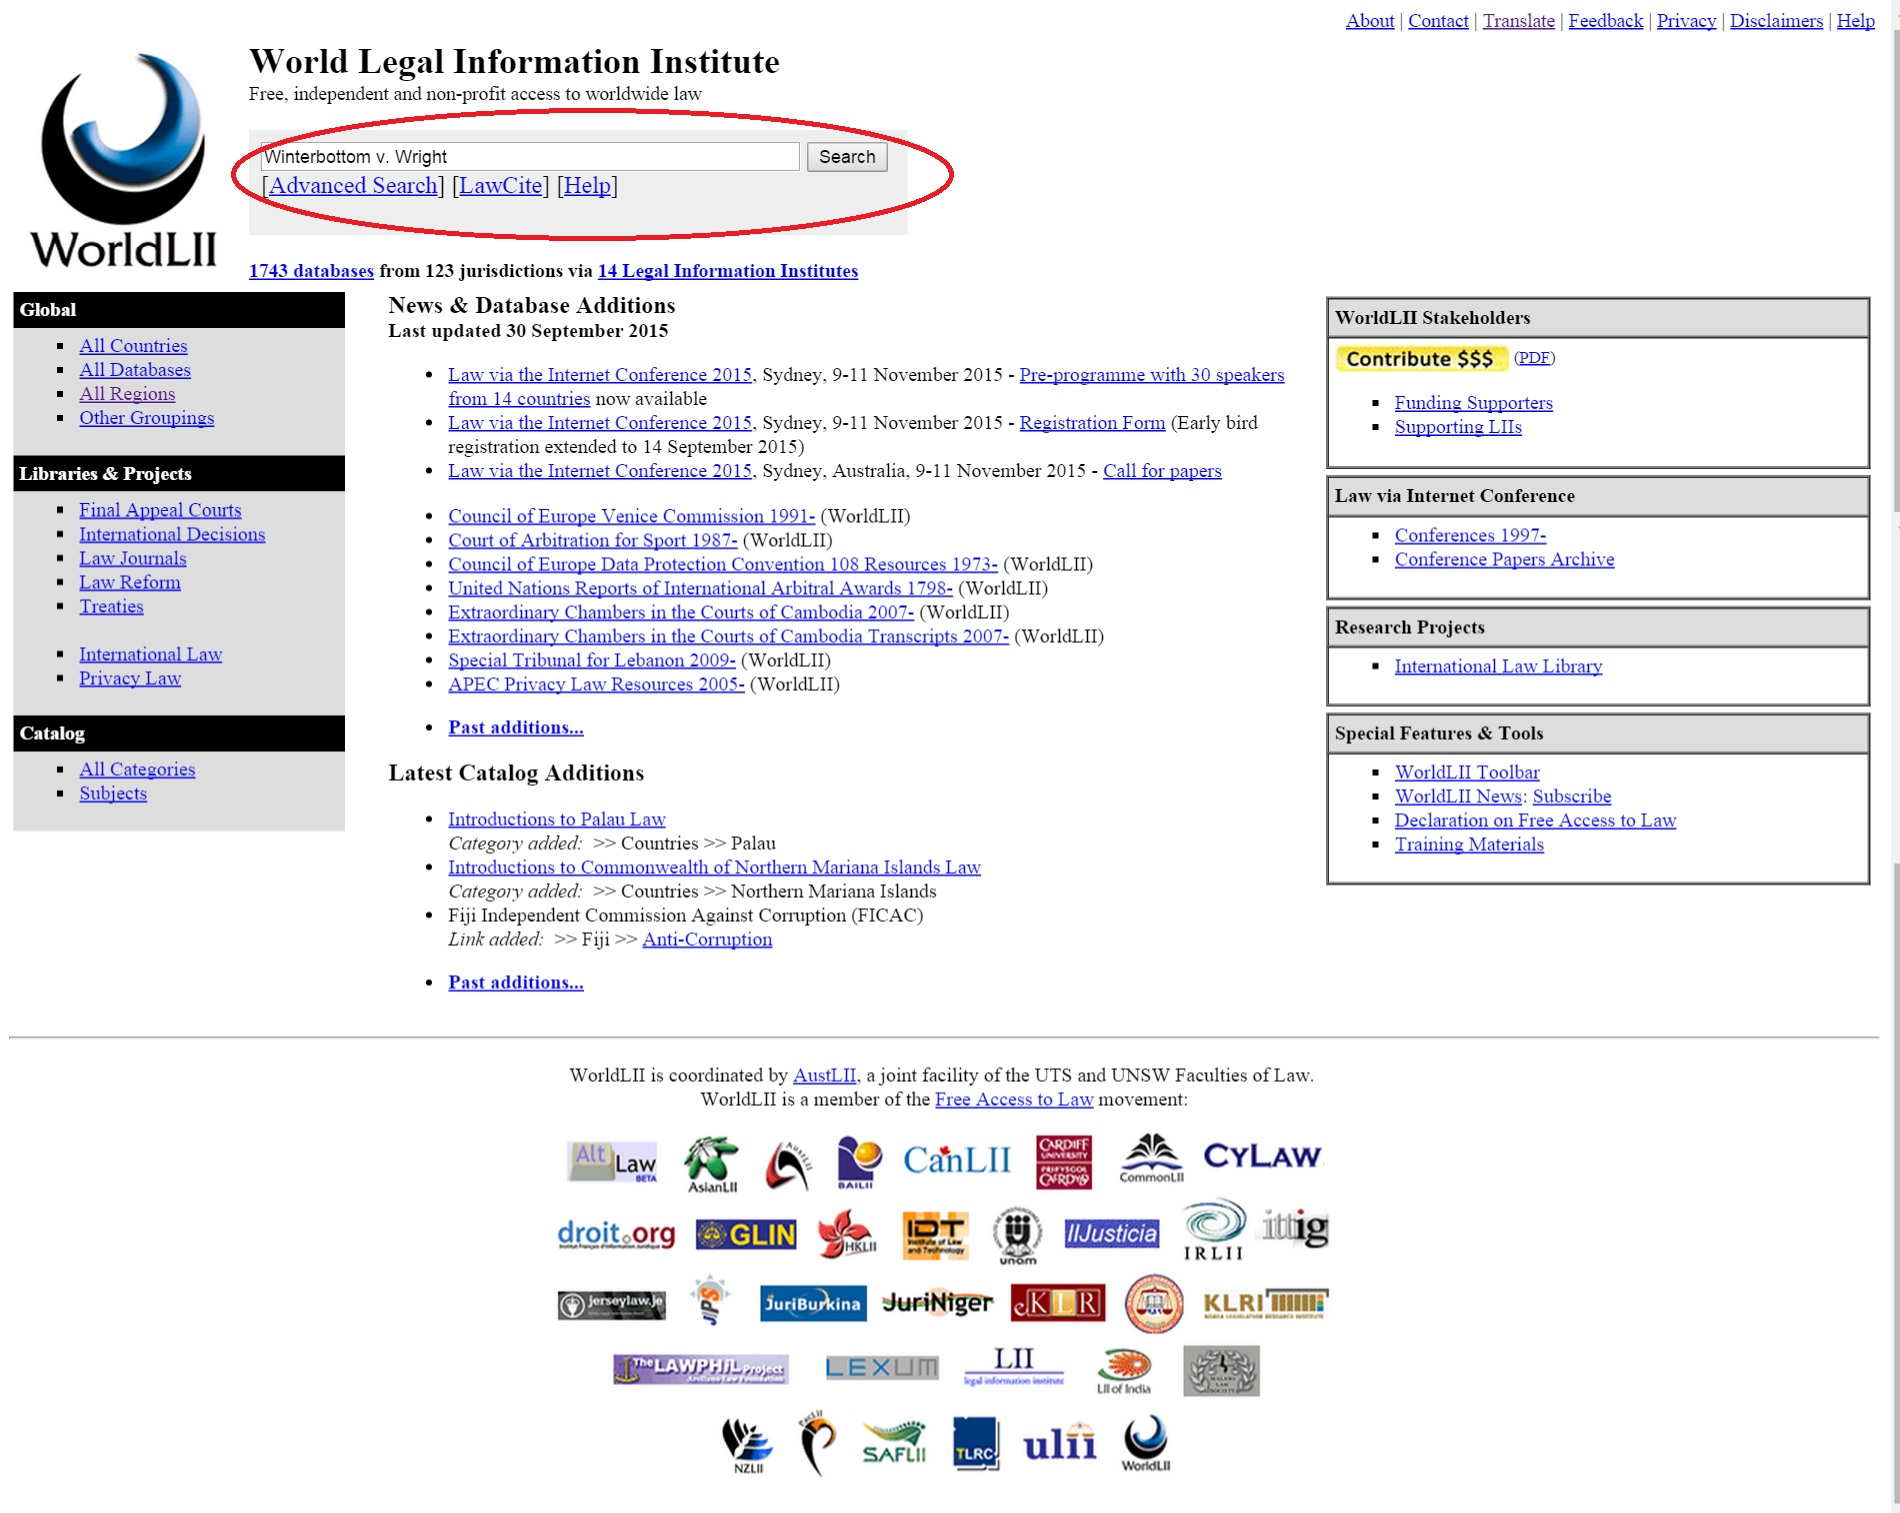 World Legal Information Institute (LII) search screen